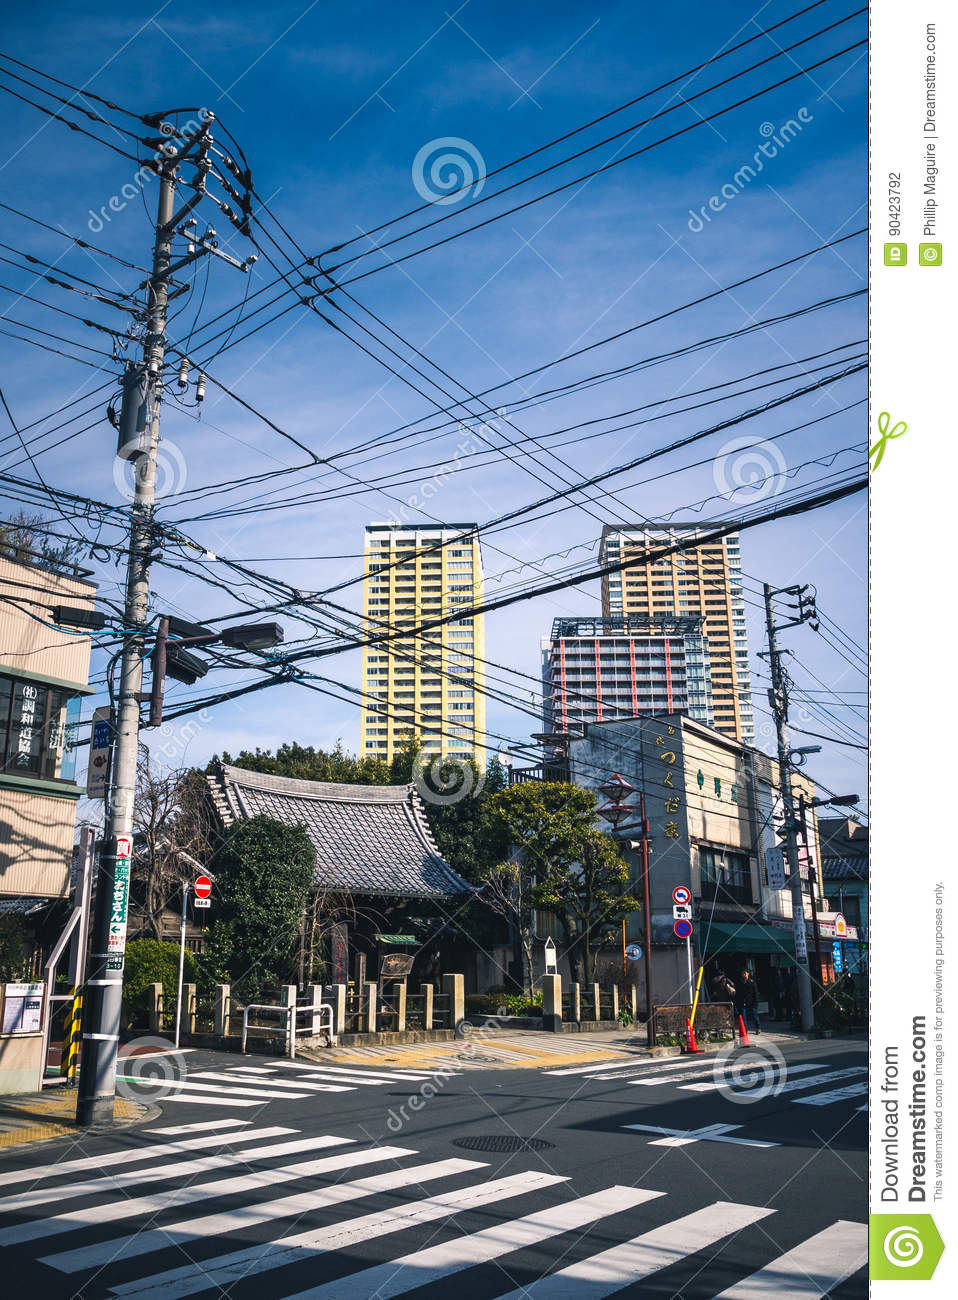 Neighborhood Street Lines Wiring Diagrams Craftsman 85 Amp Mig Welder Parts Model 93420111 Japanese Crossing Editorial Photography Image Of Rh Dreamstime Com Sign Post Lights Cost